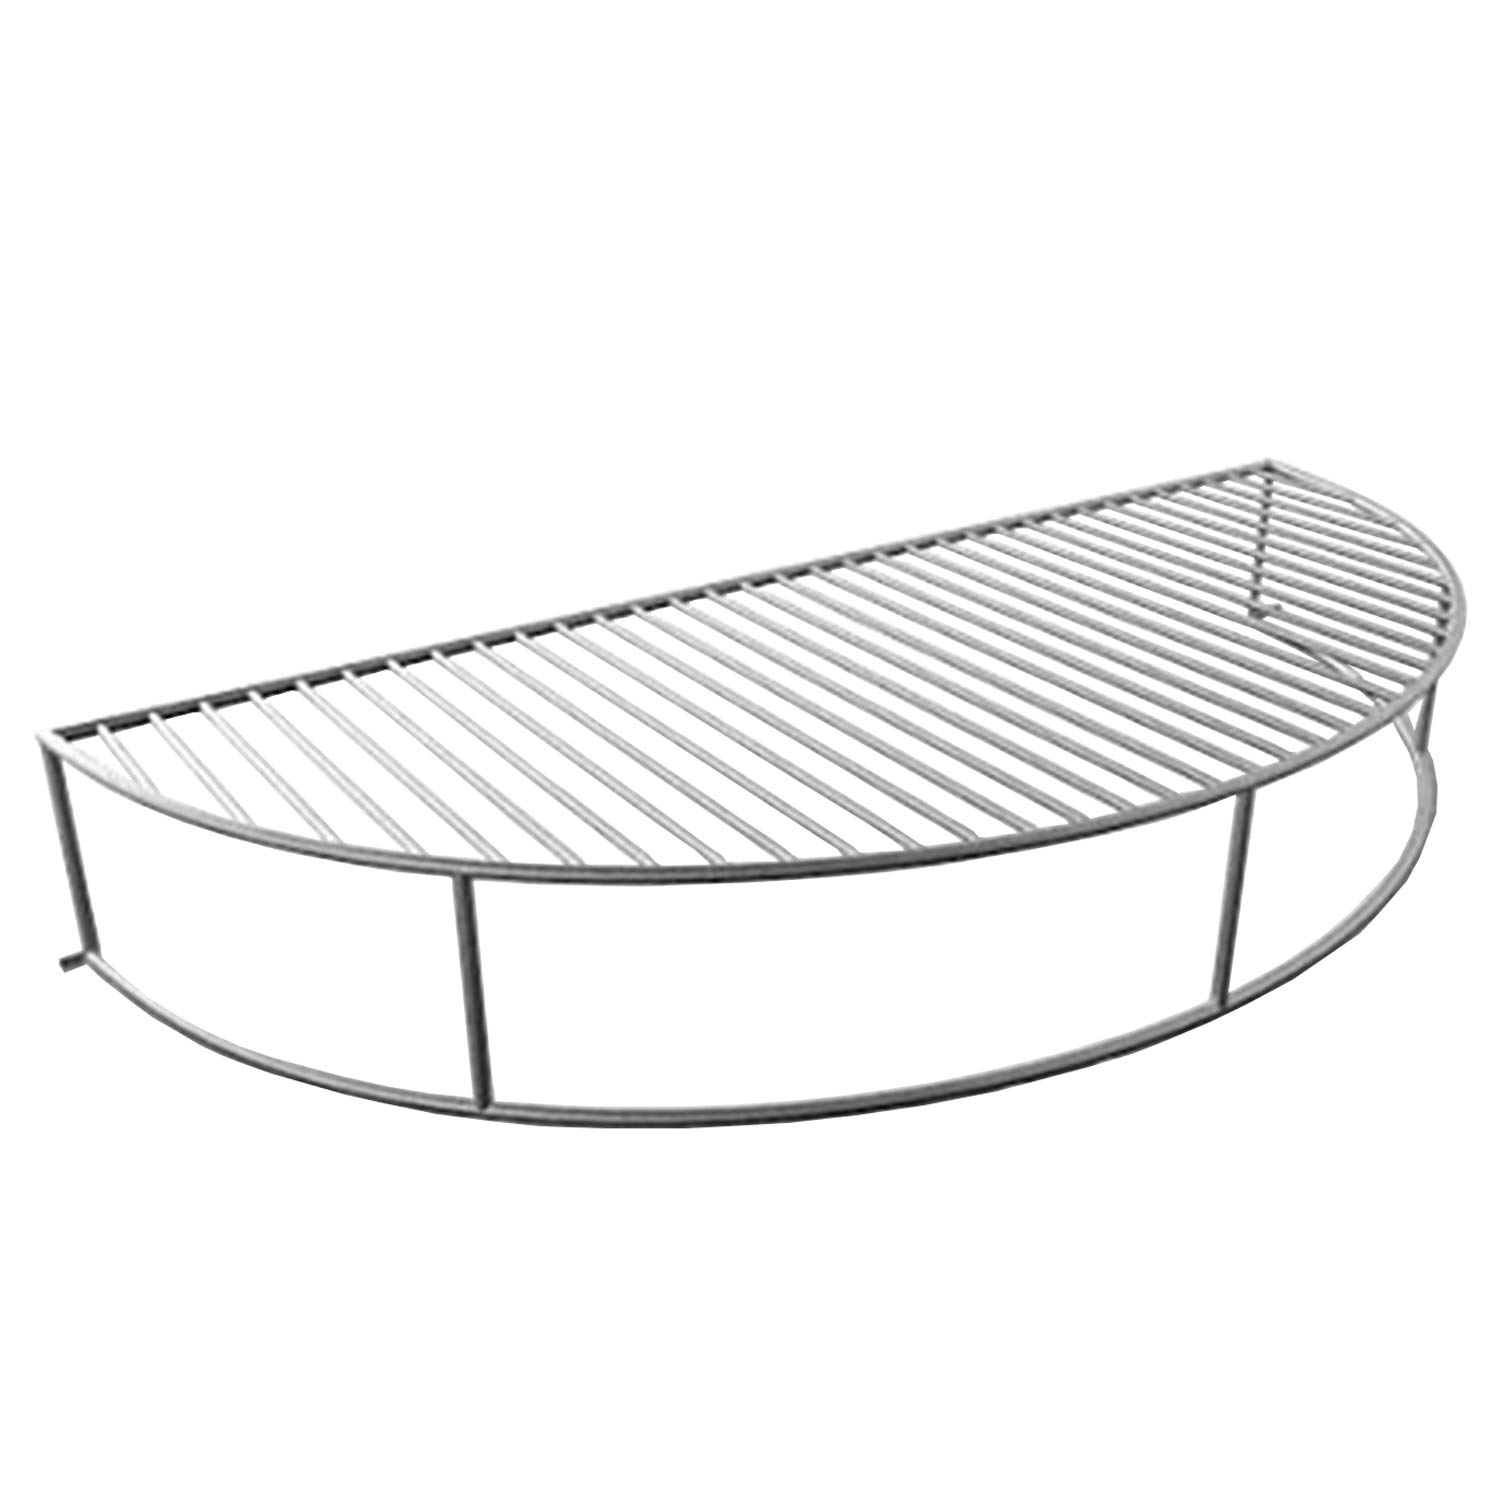 47CM One-Touch Weber charcoal grills Bar-B-Kettle charcoal Smokey Mountain Cooker smoker Gas Grill Bar.B.Q.S 44.45CM Replacement Cooking Grid Grates for Weber 7432 Kettle Grill Heavy Duty Fit 18.5